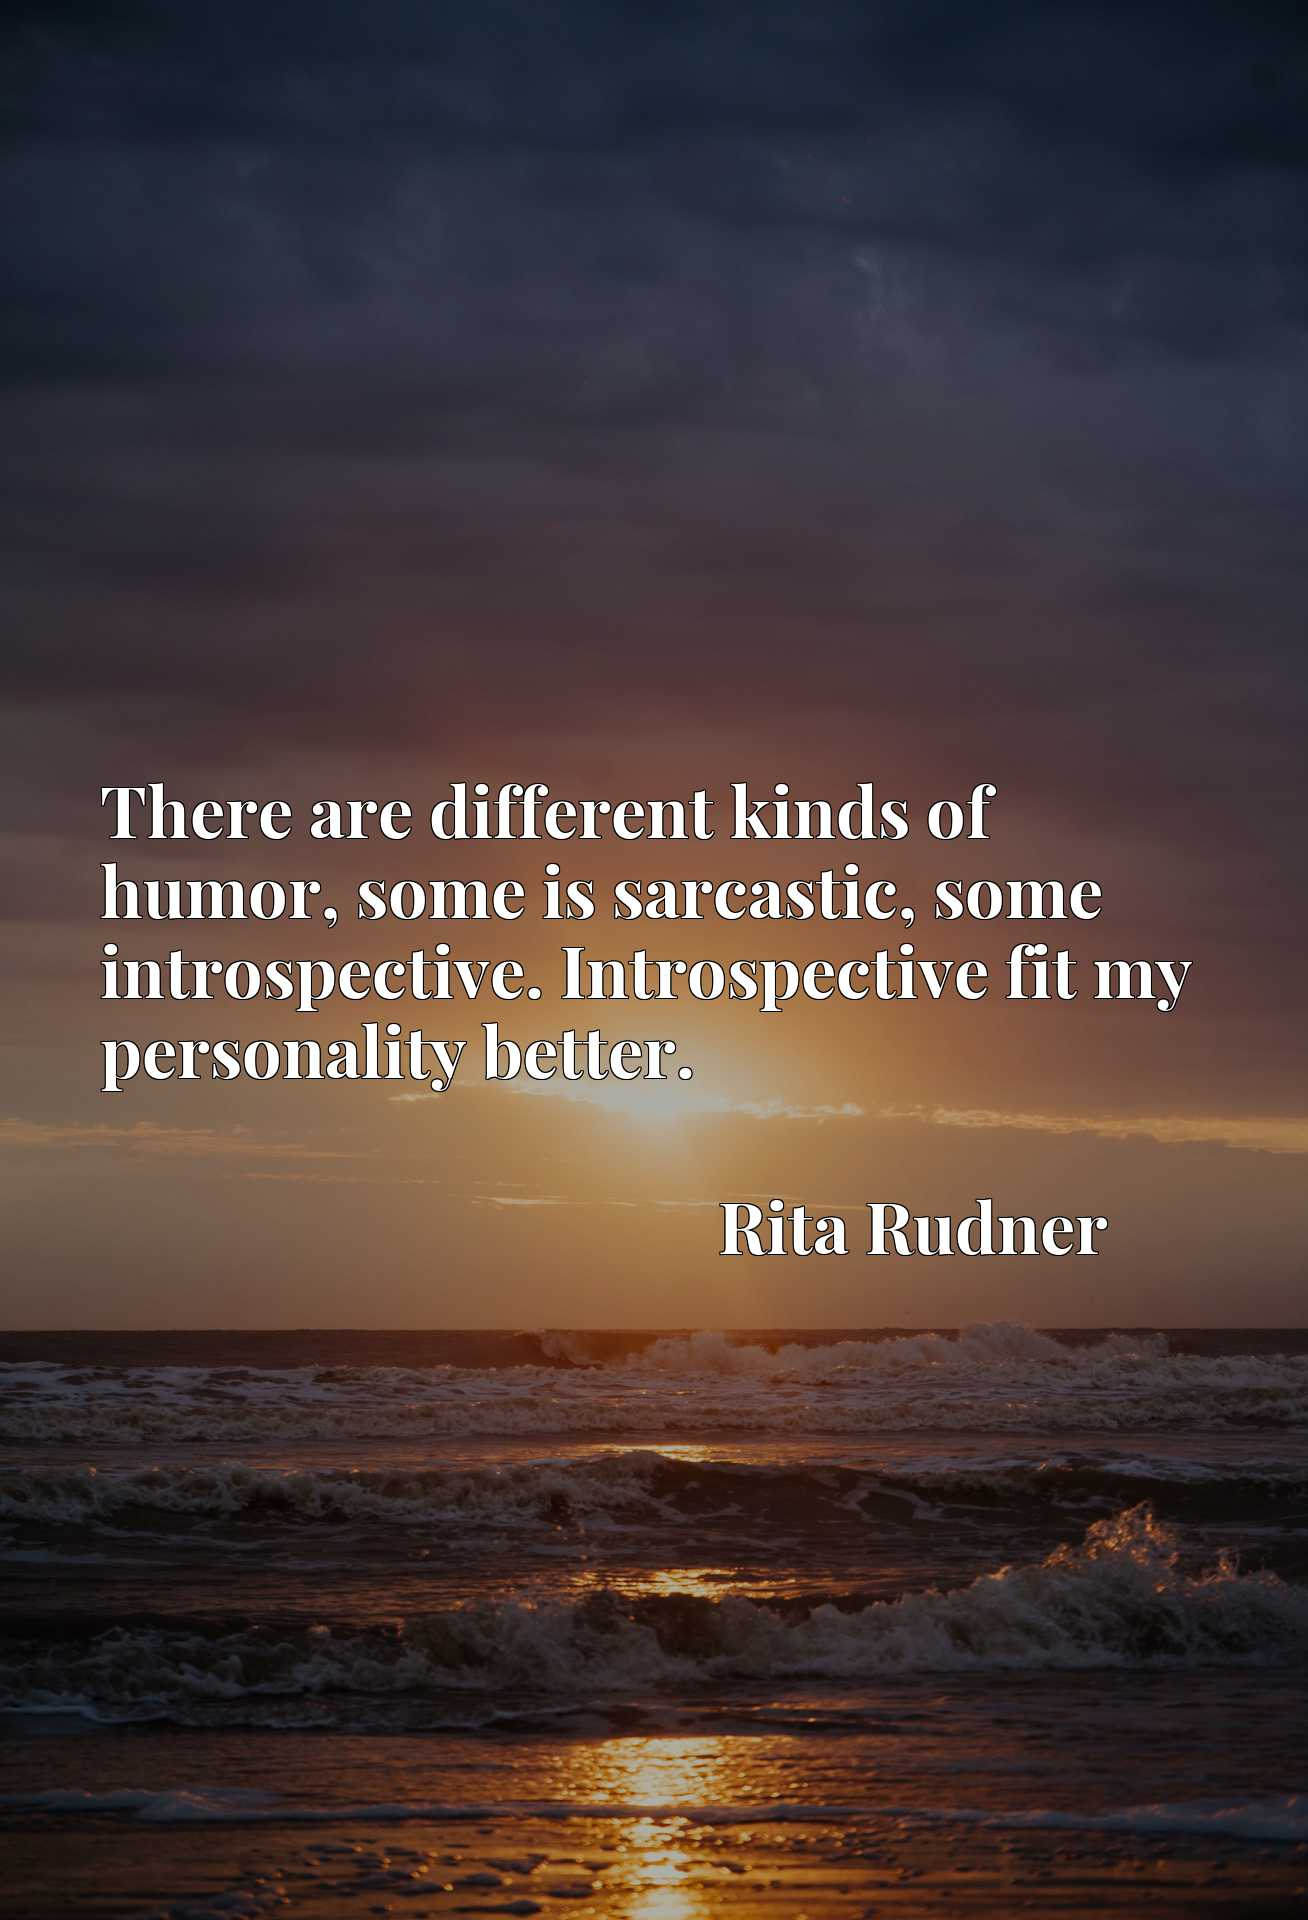 There are different kinds of humor, some is sarcastic, some introspective. Introspective fit my personality better.